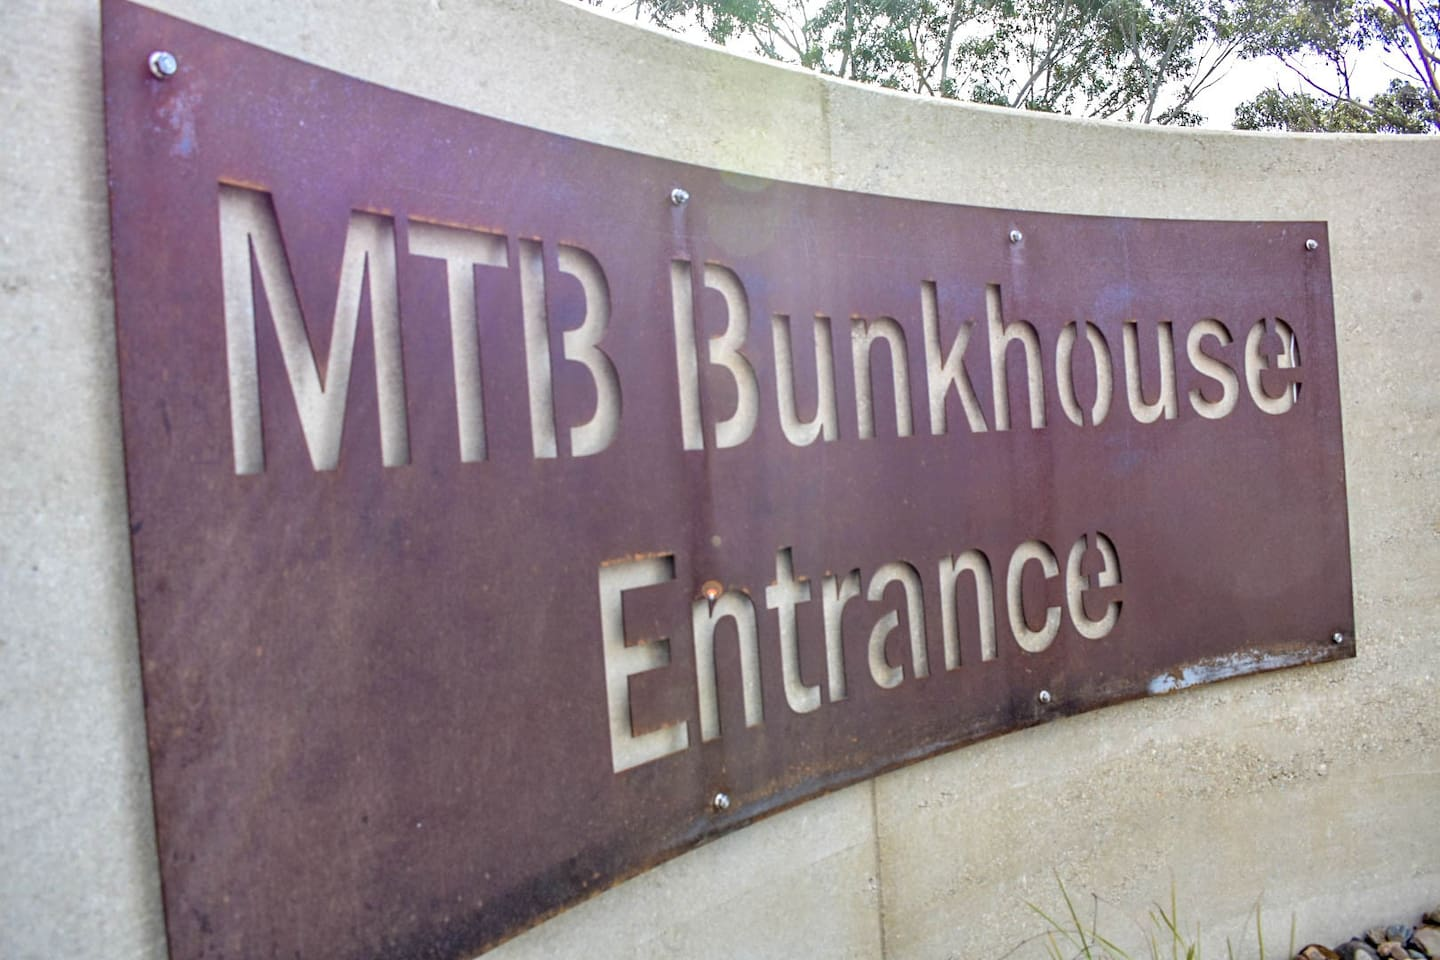 MTB Bunkhouse entrance